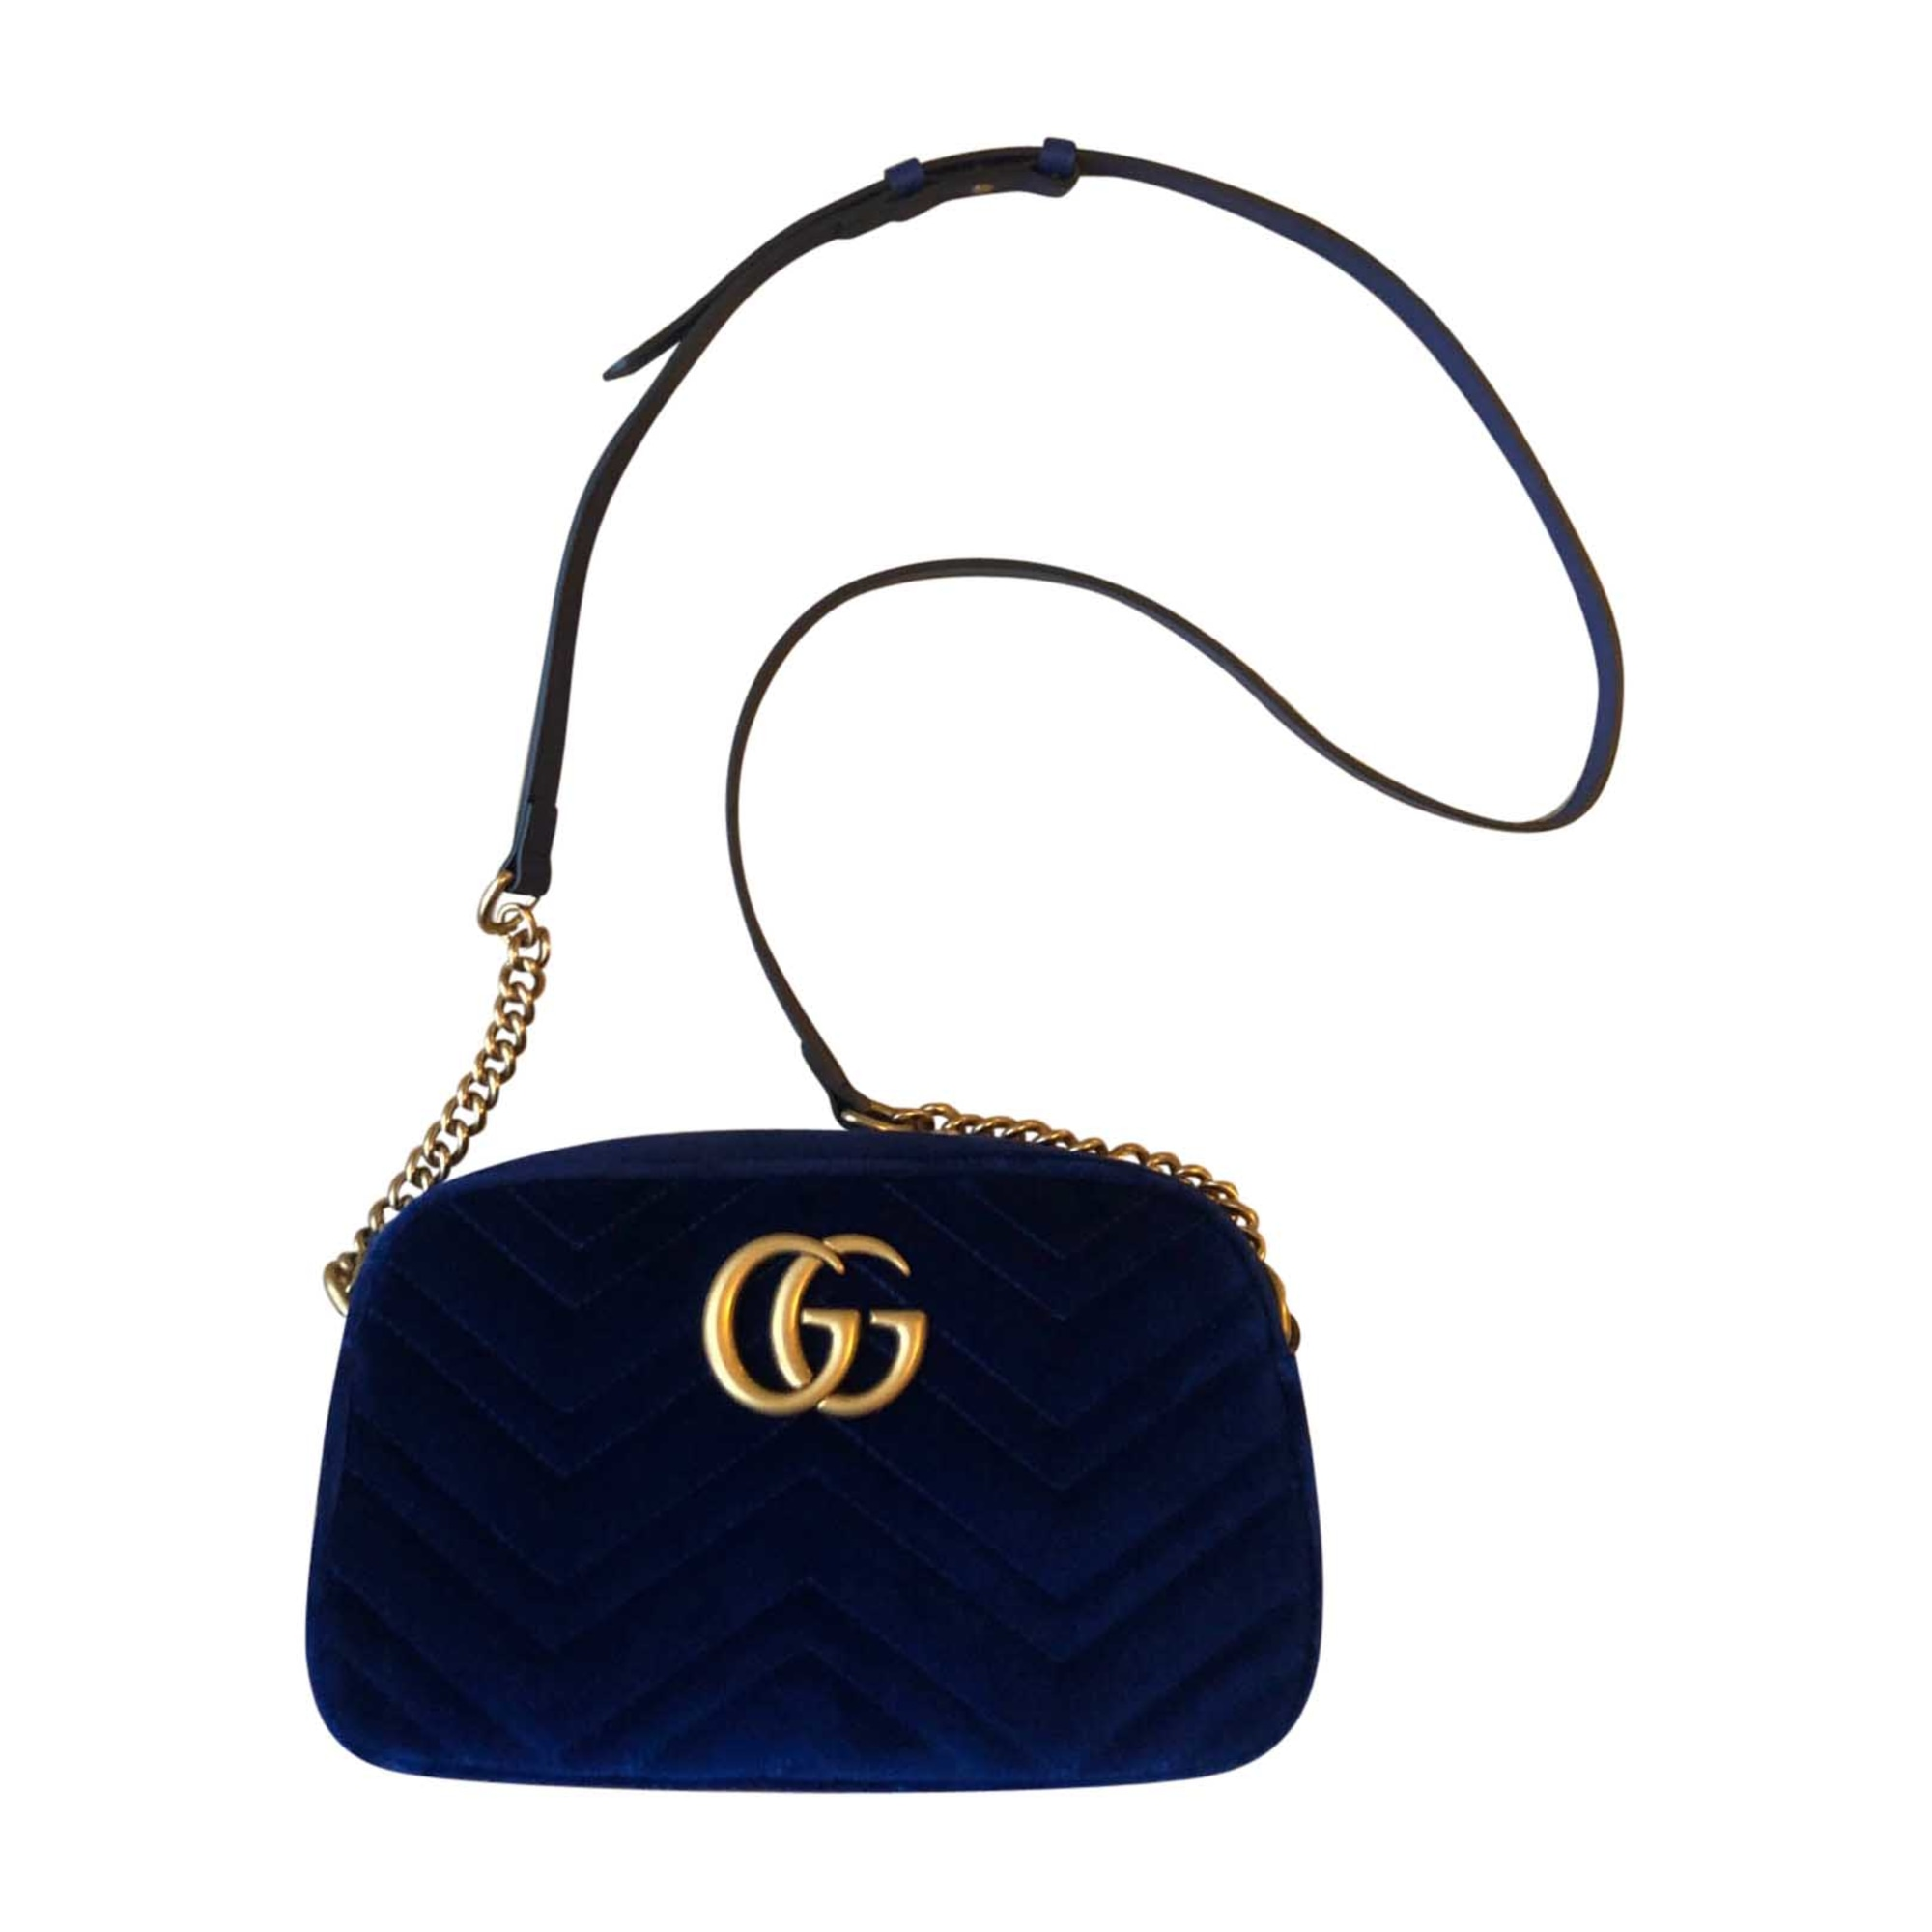 Leather Shoulder Bag GUCCI Marmont Blue, navy, turquoise